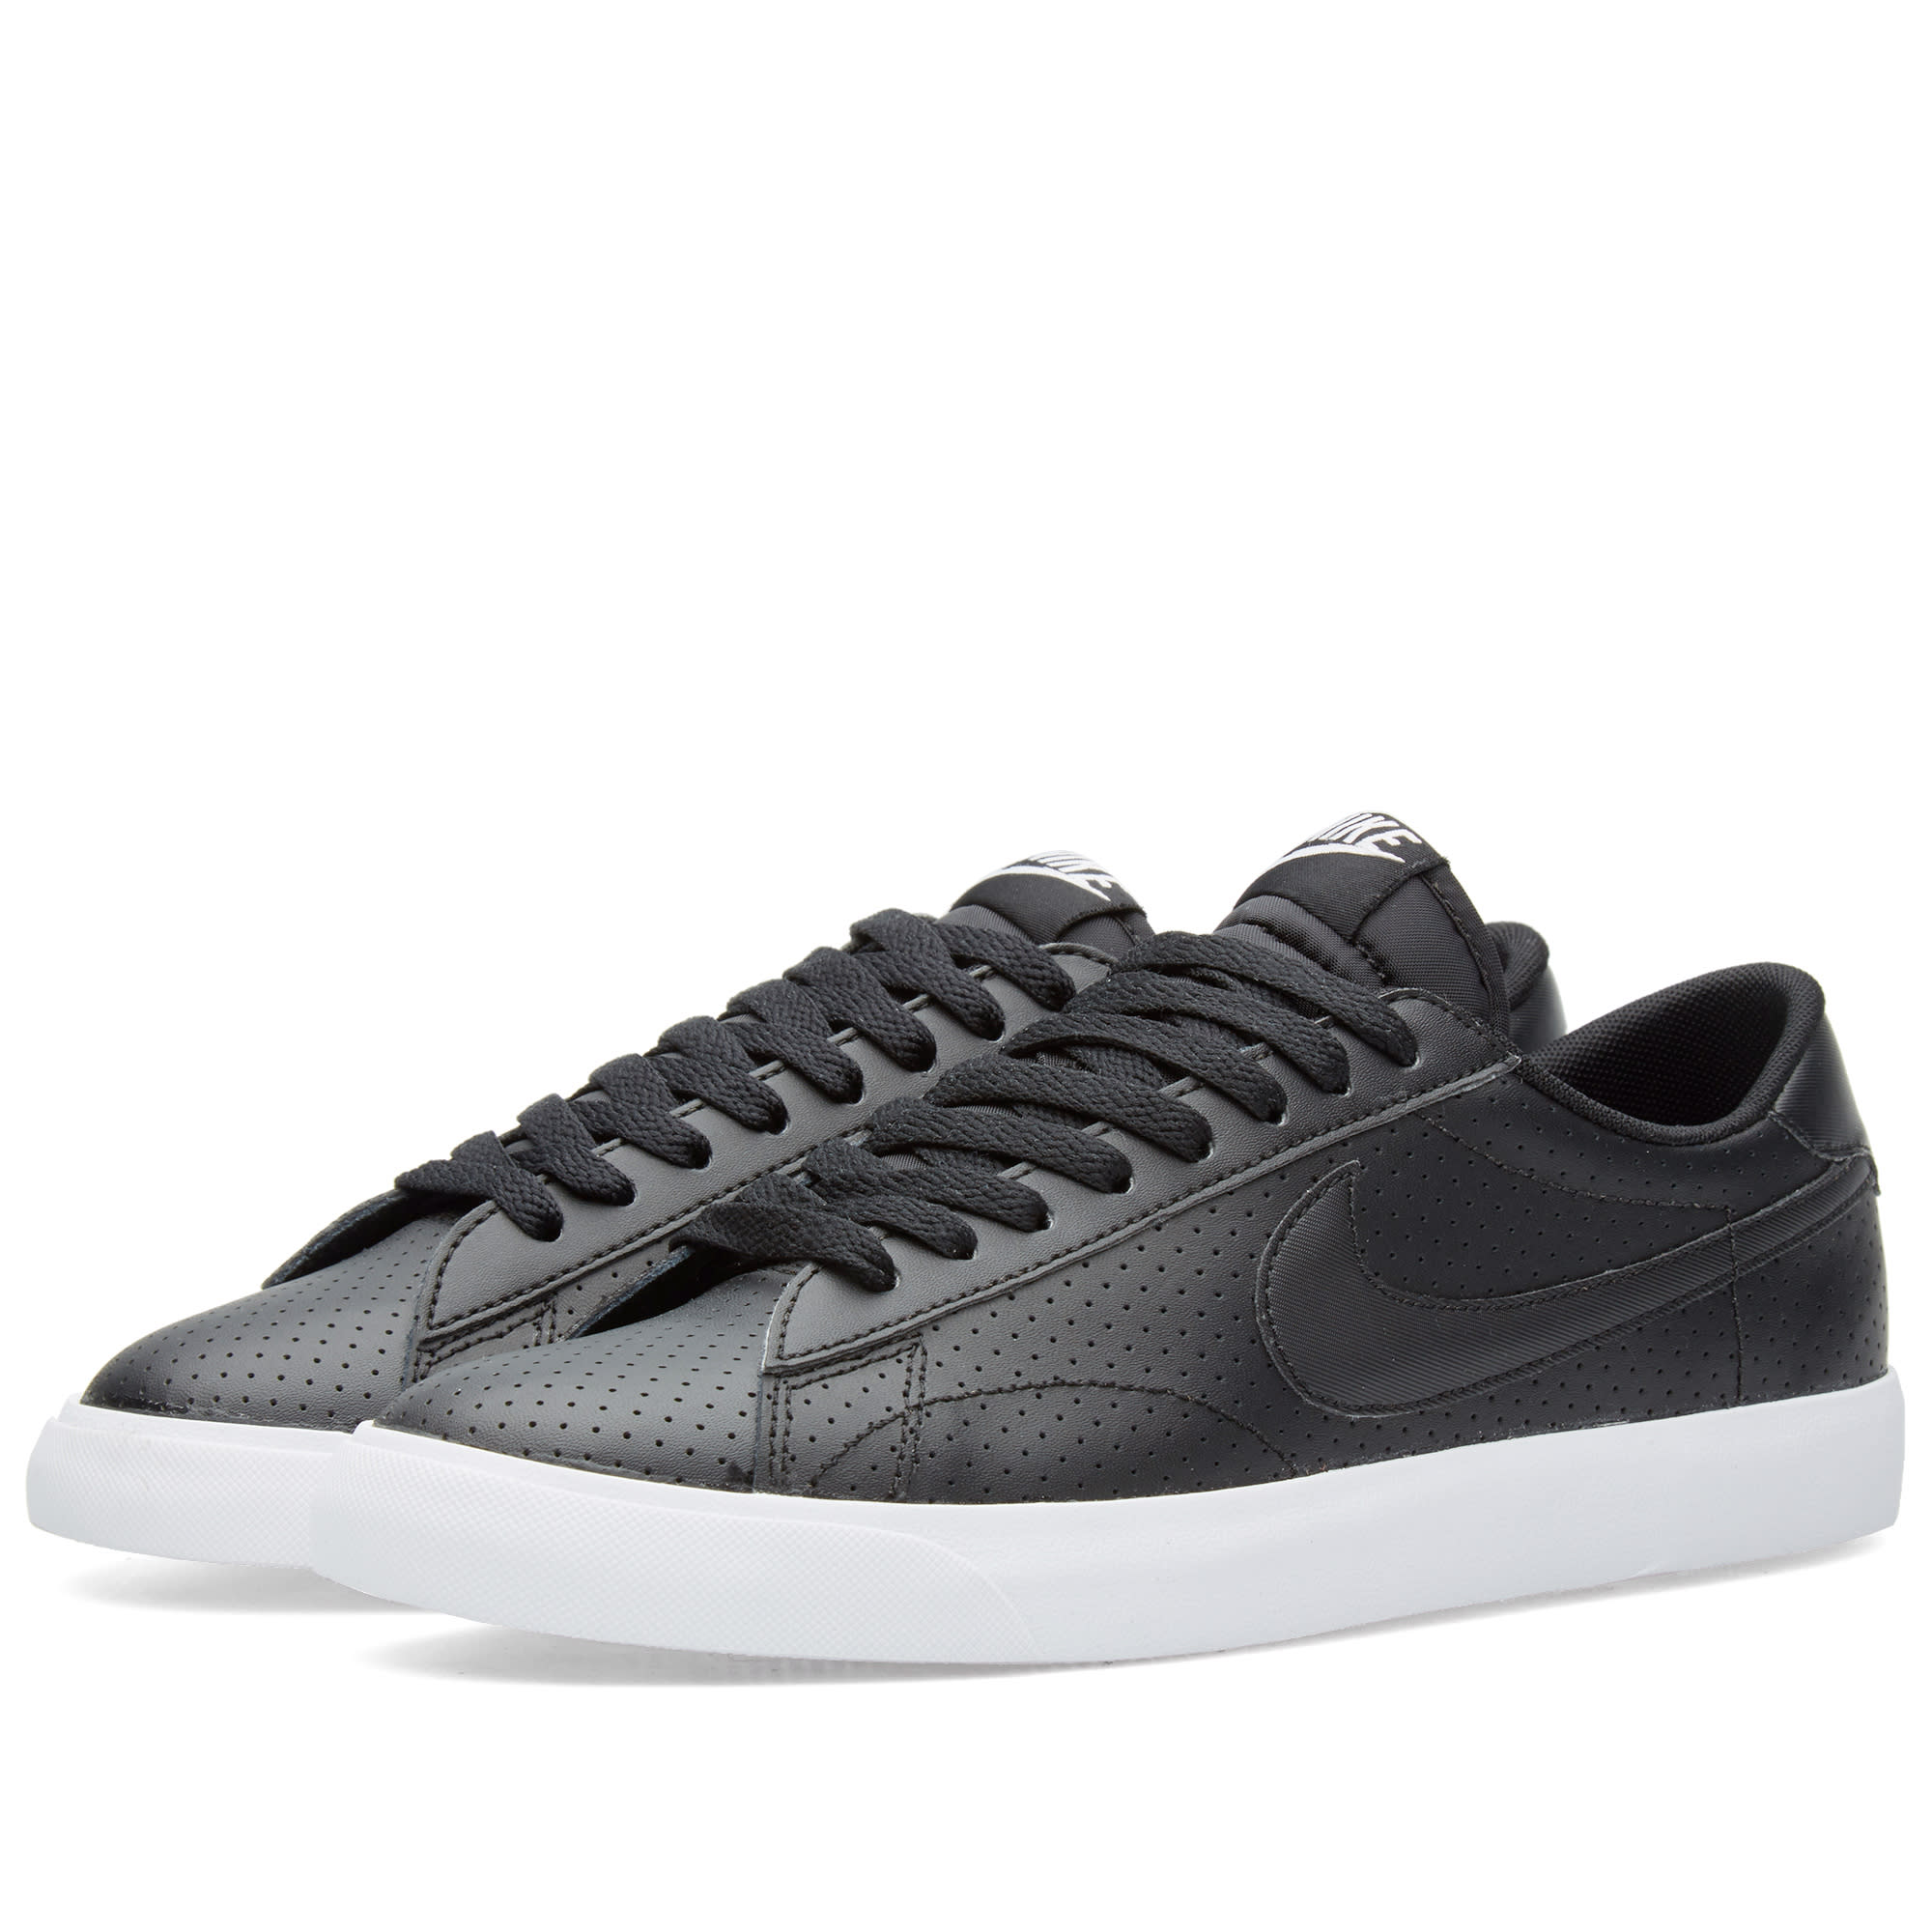 reasonably priced quite nice quality products Nike Tennis Classic AC